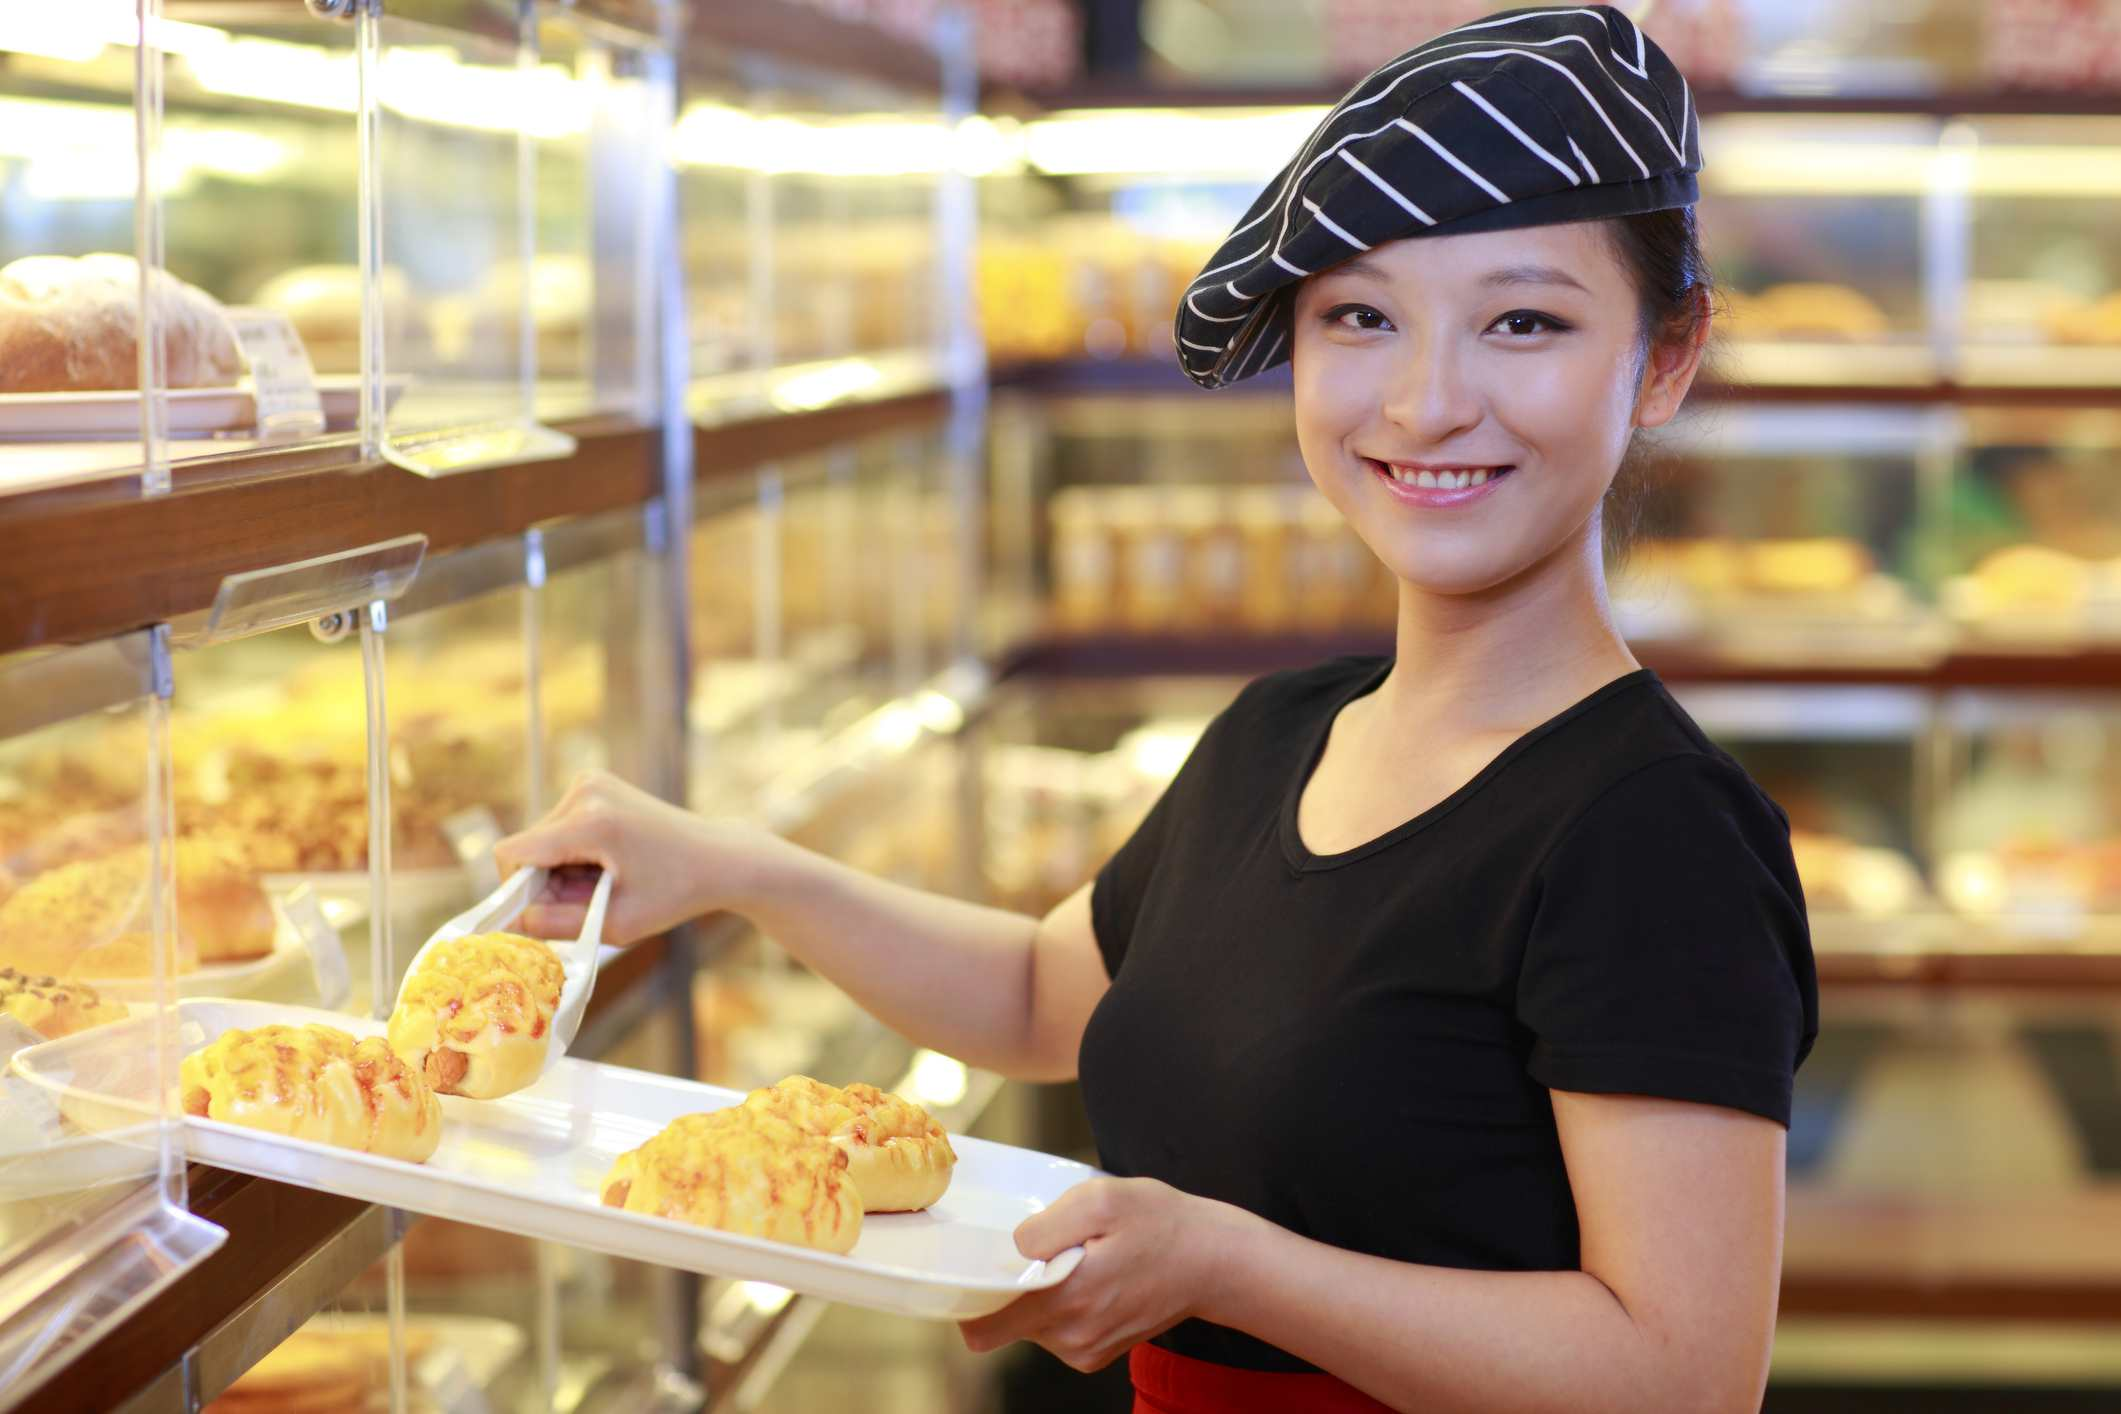 pretty young woman working in the bakery